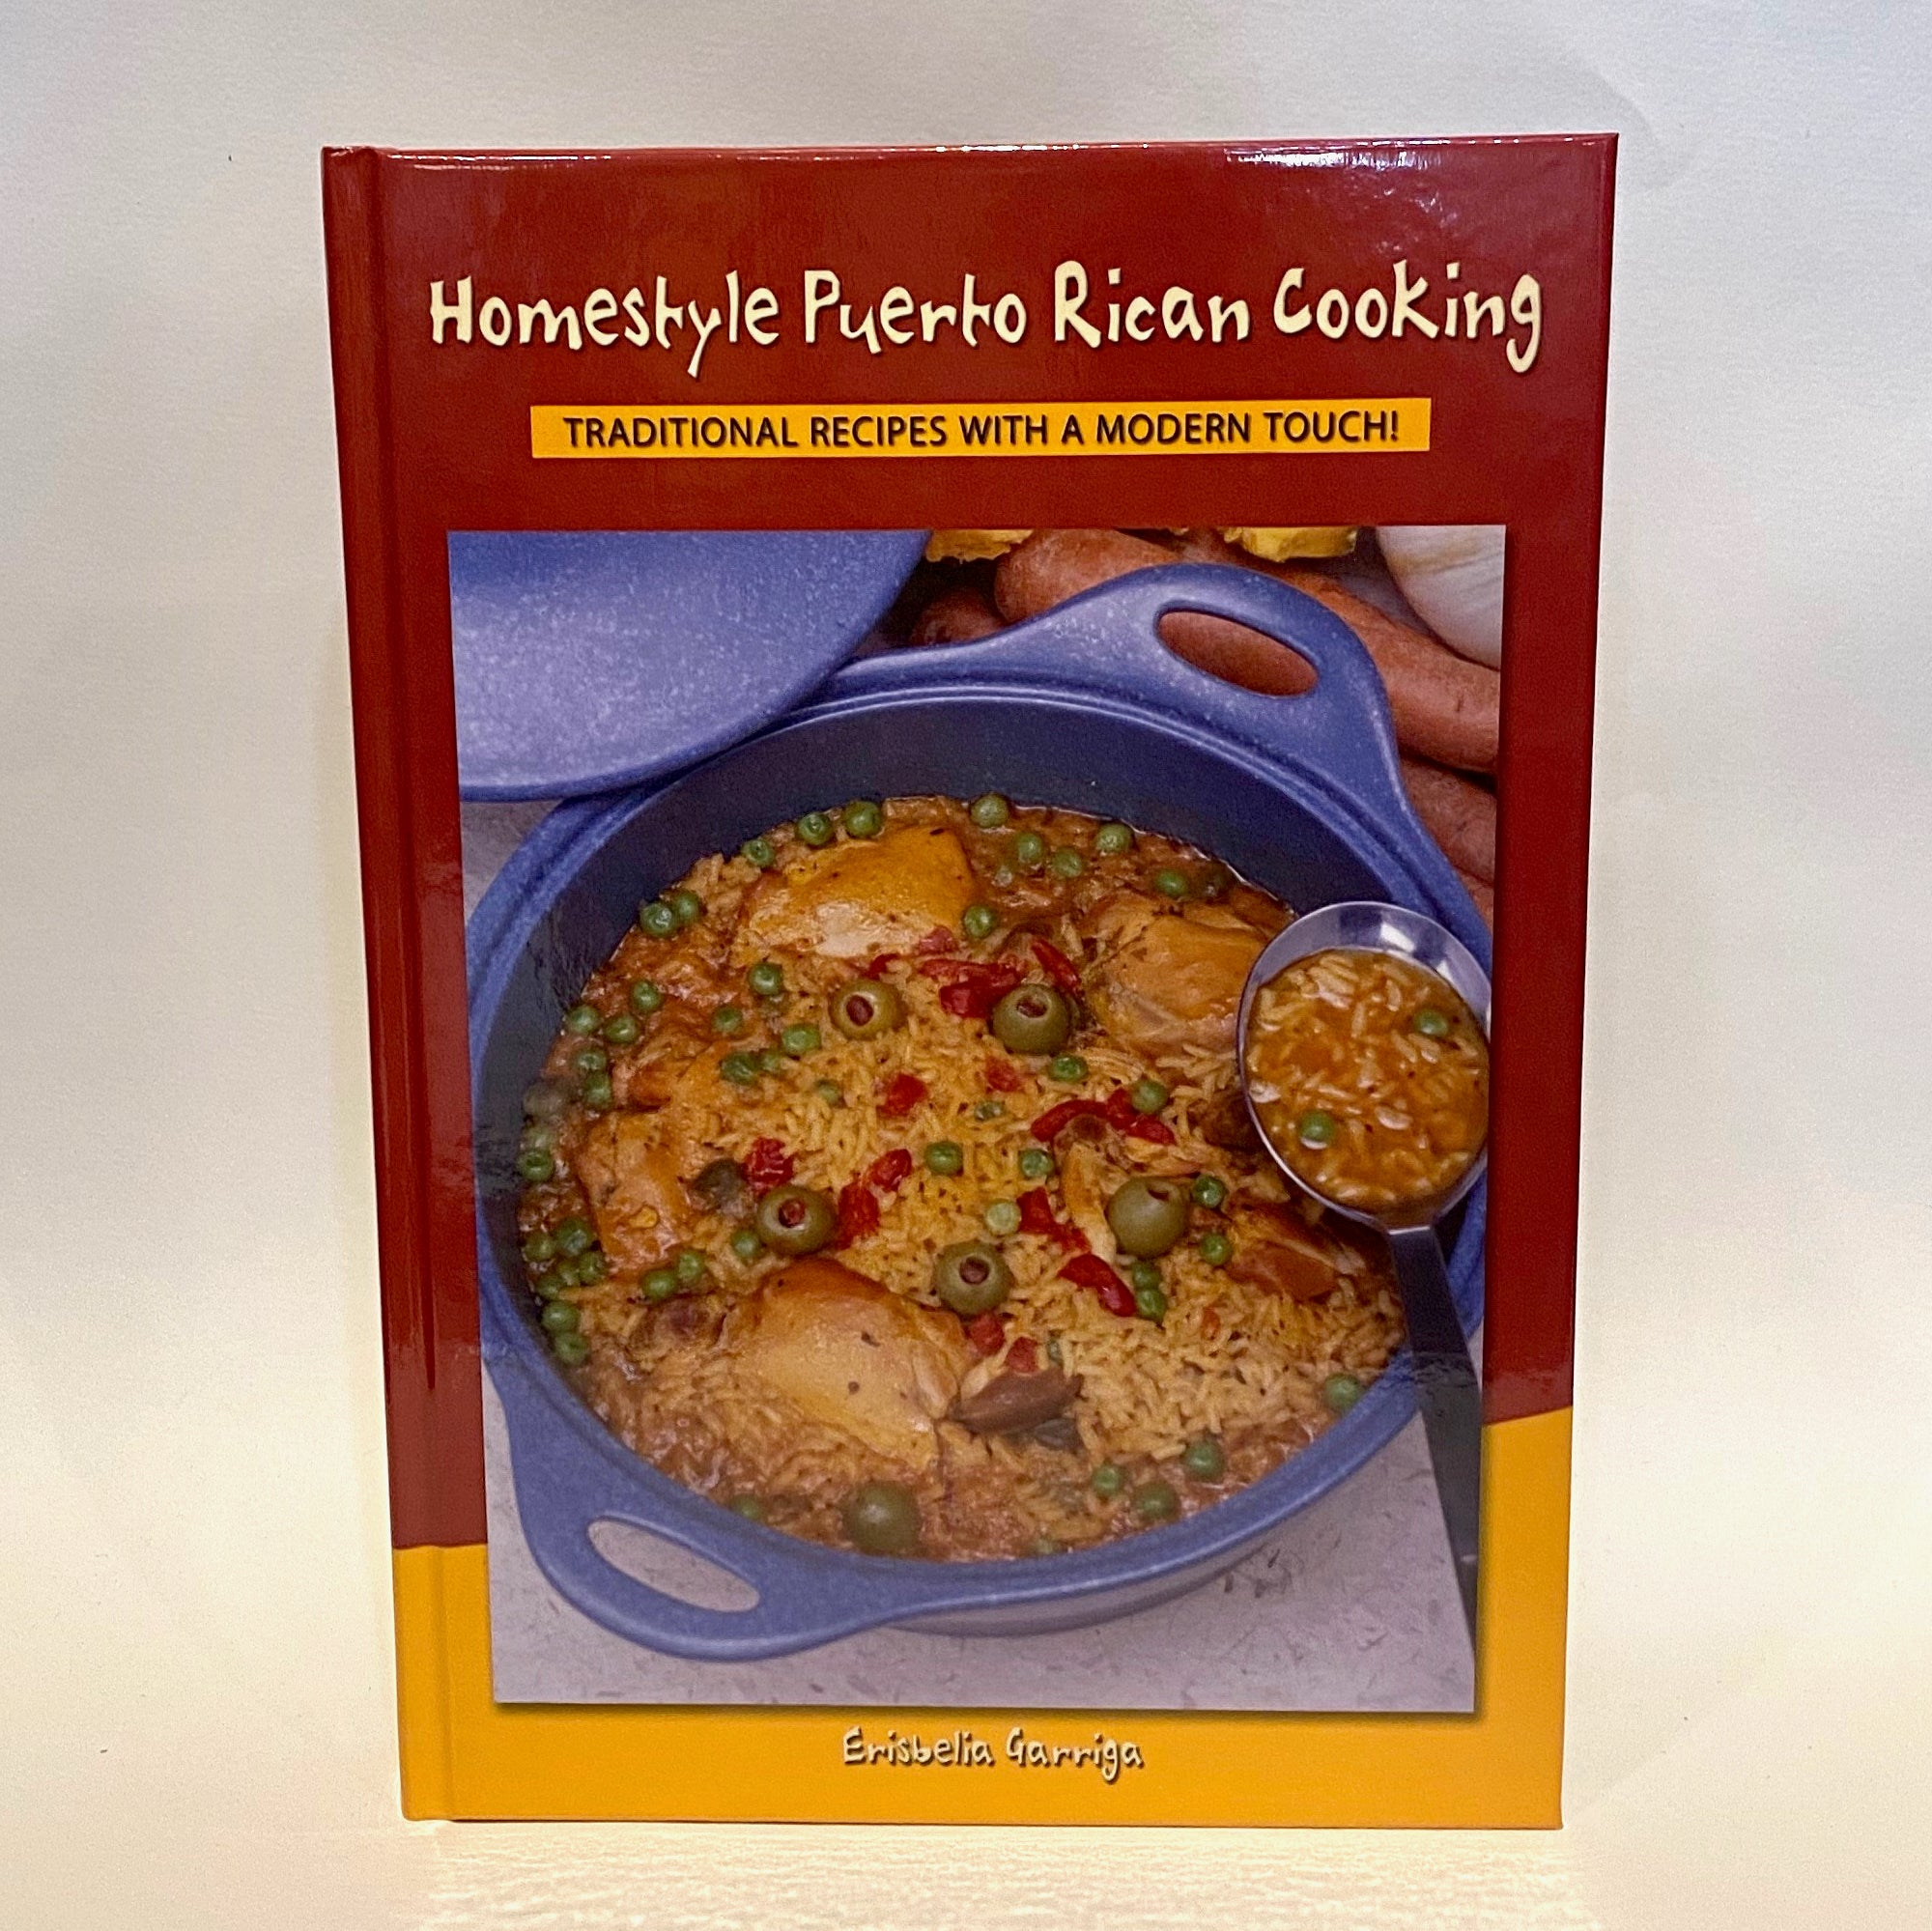 Homestyle Puerto Rican Cooking by Erisbelia Garriaga